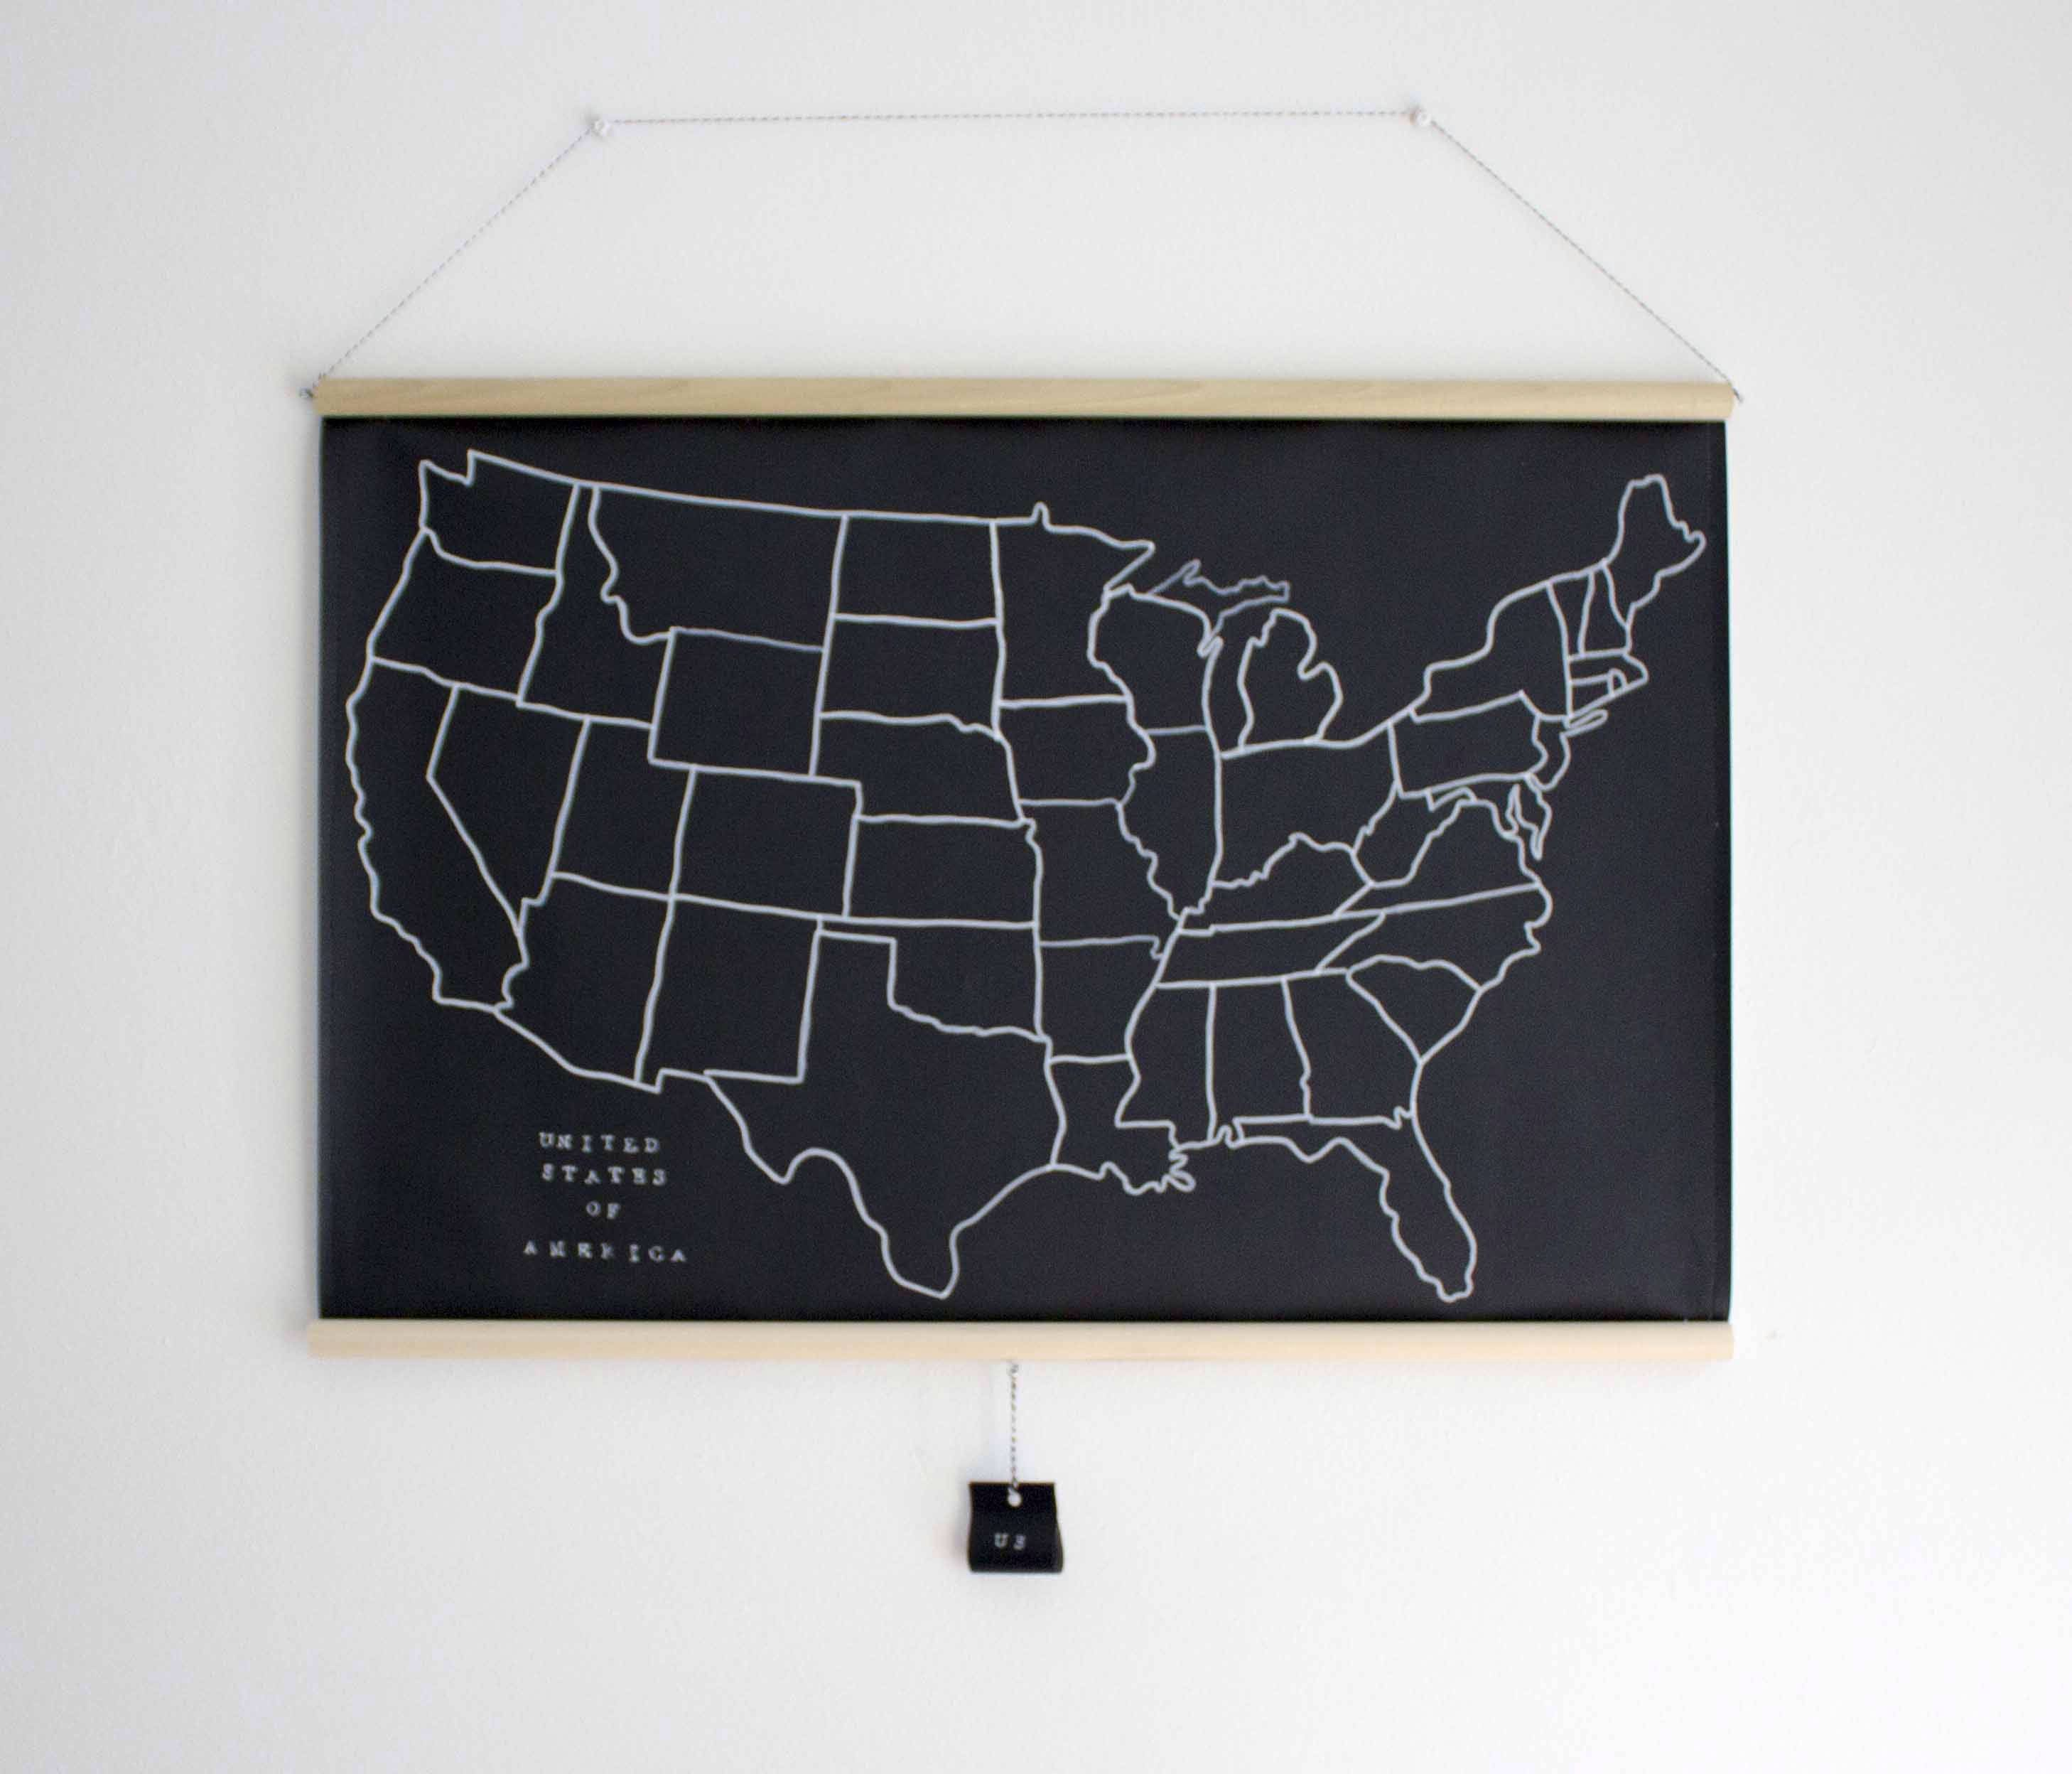 United states chalkboard map black white us map geography by united states chalkboard map black white us map geography by lakestreetave on etsy gumiabroncs Image collections